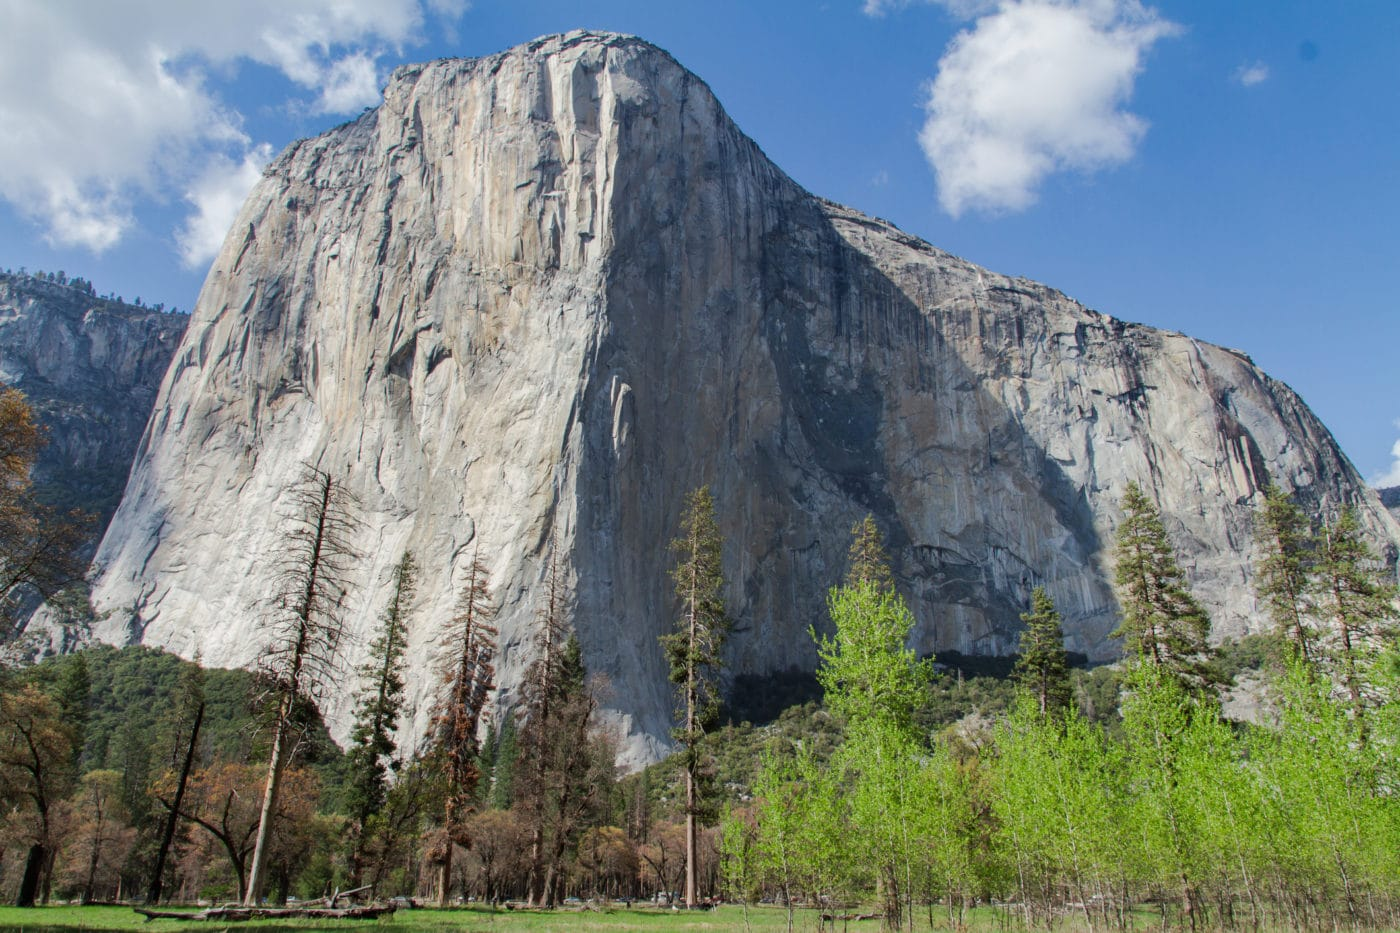 View of El Capitan in Yosemite Valley